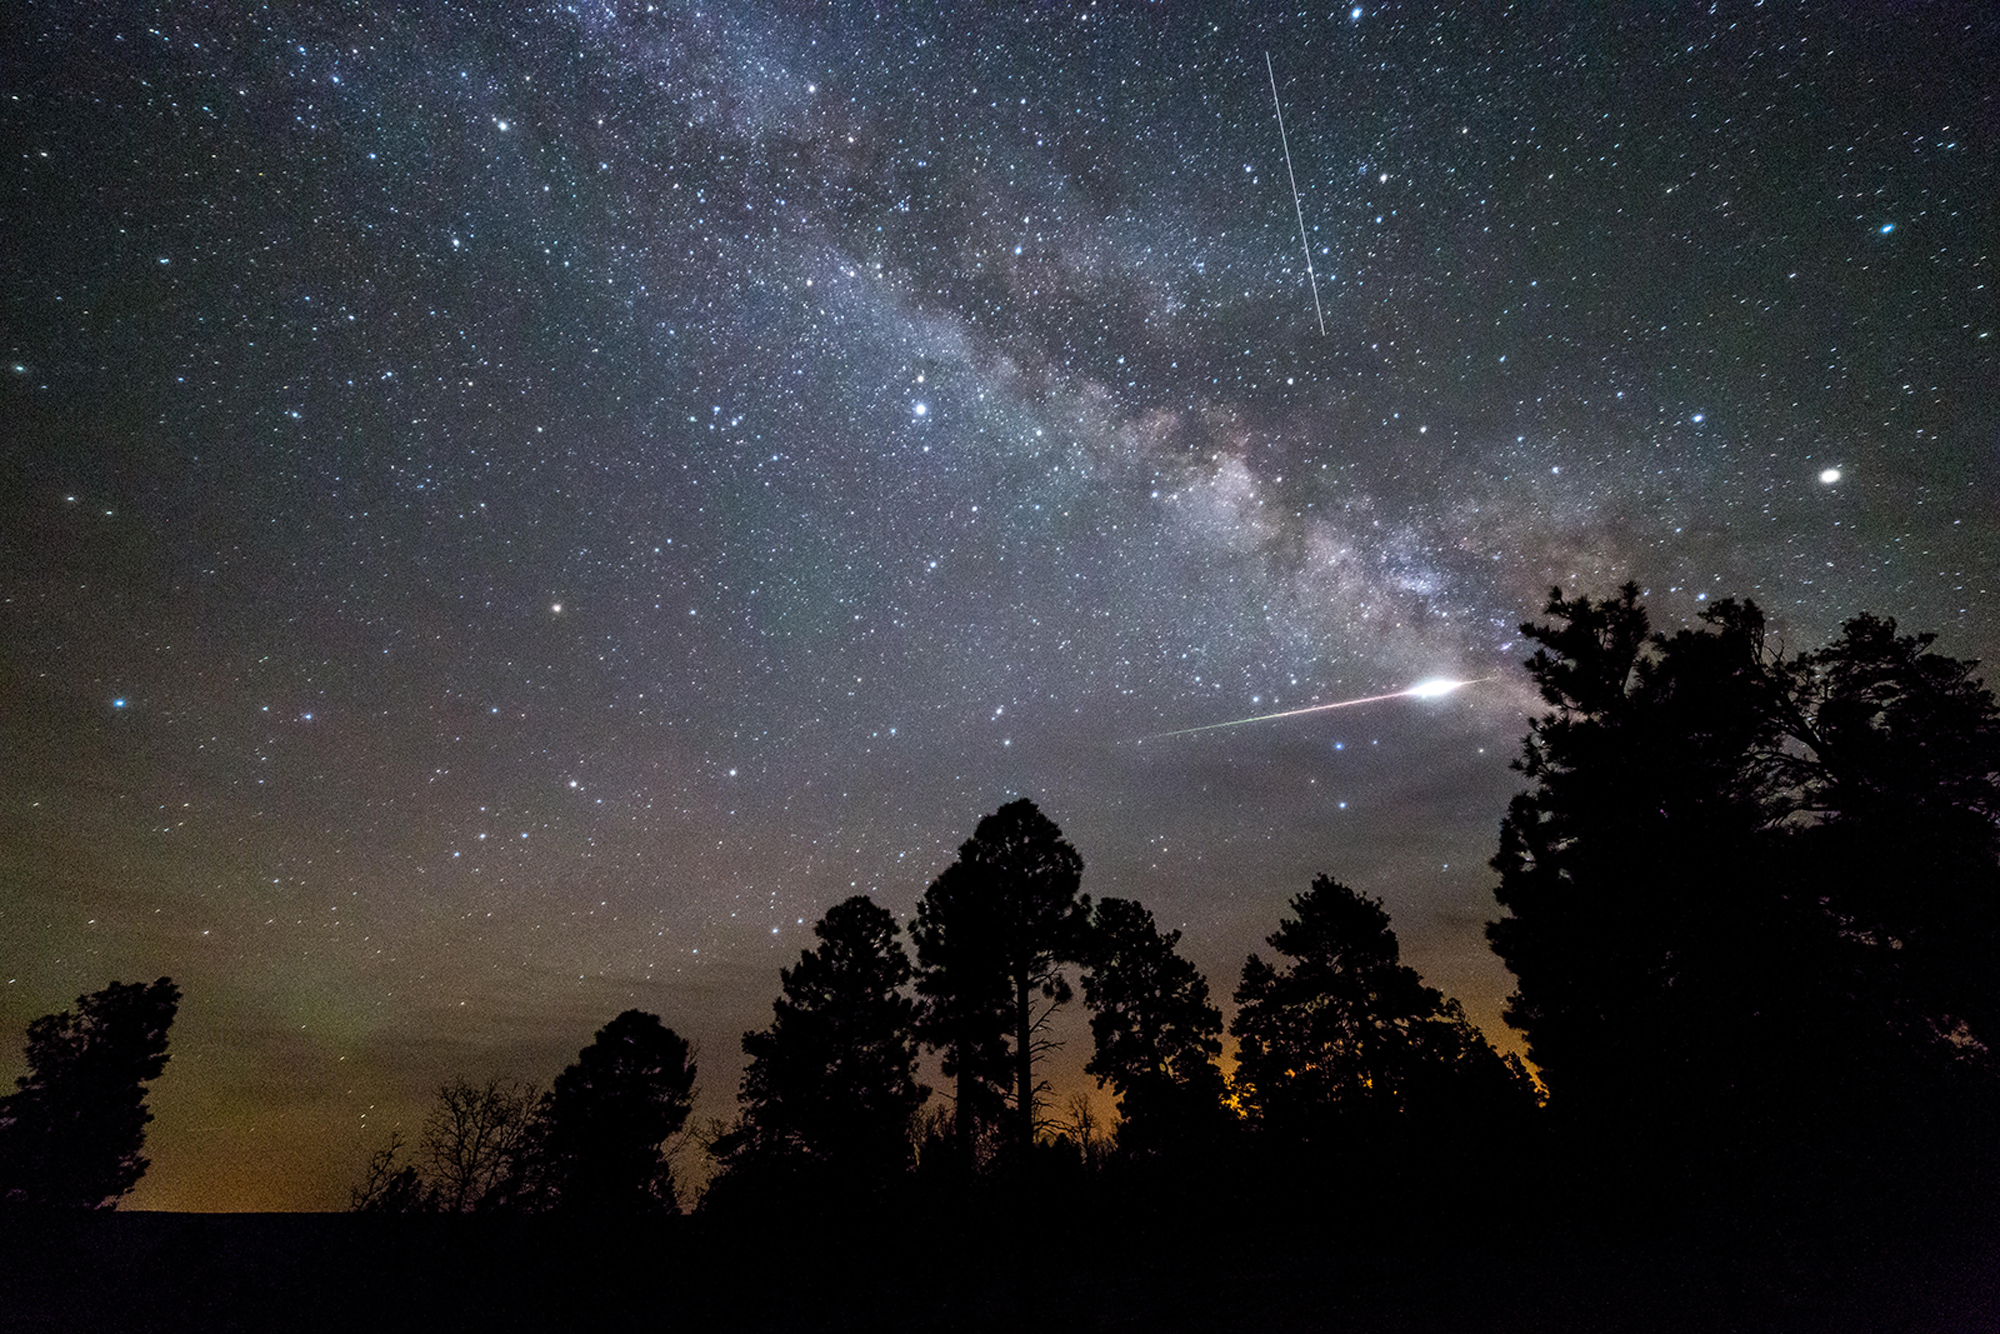 Halley S Comet Is Bringing A Meteor Shower That Will Peak Tonight When And How To Watch